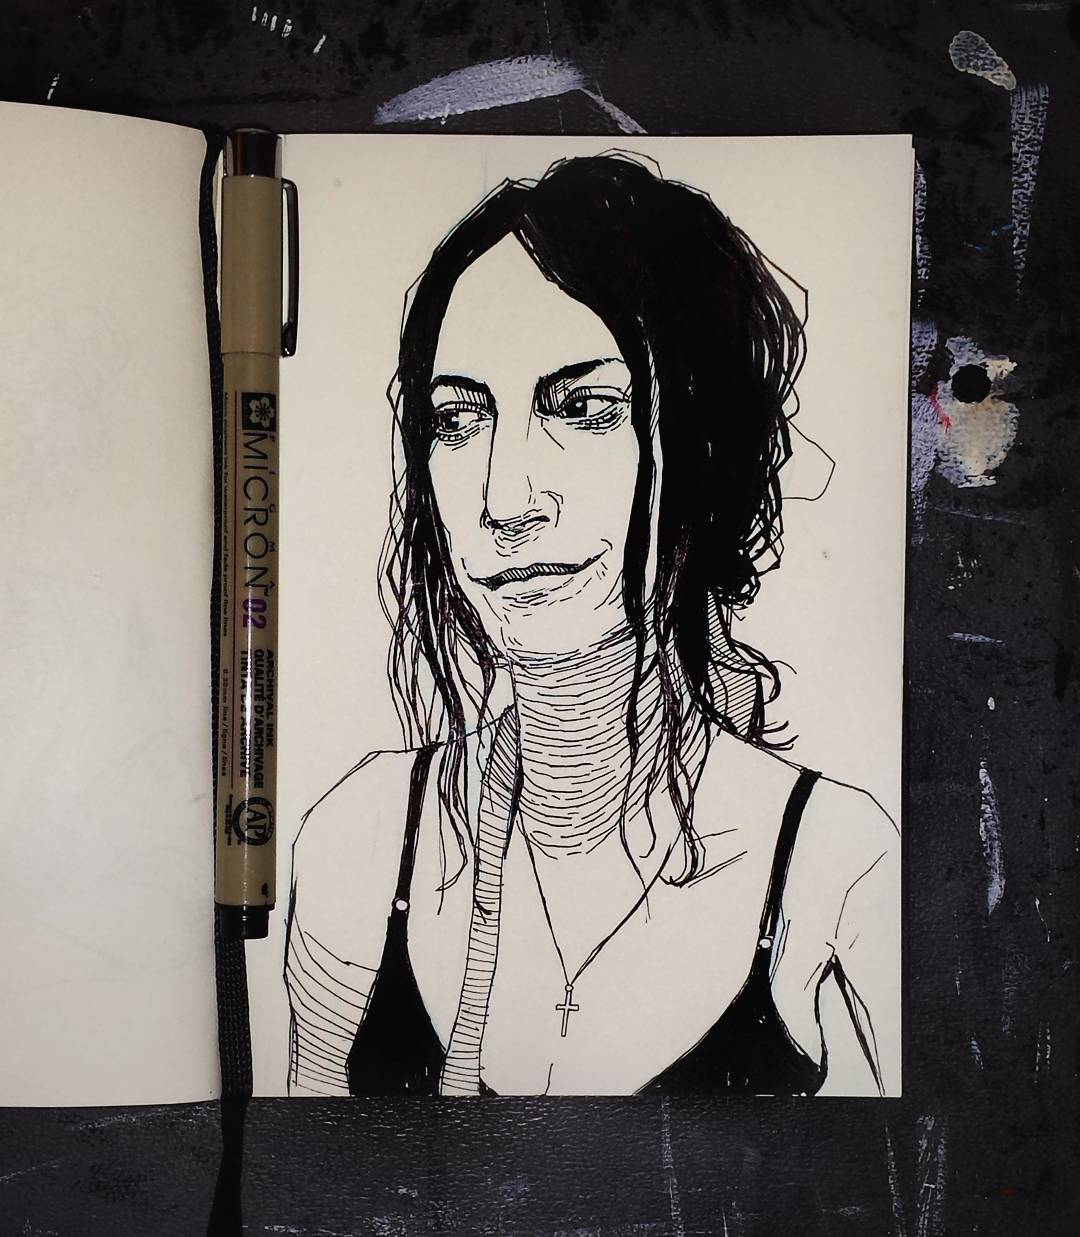 Patti Smith portrait illustration